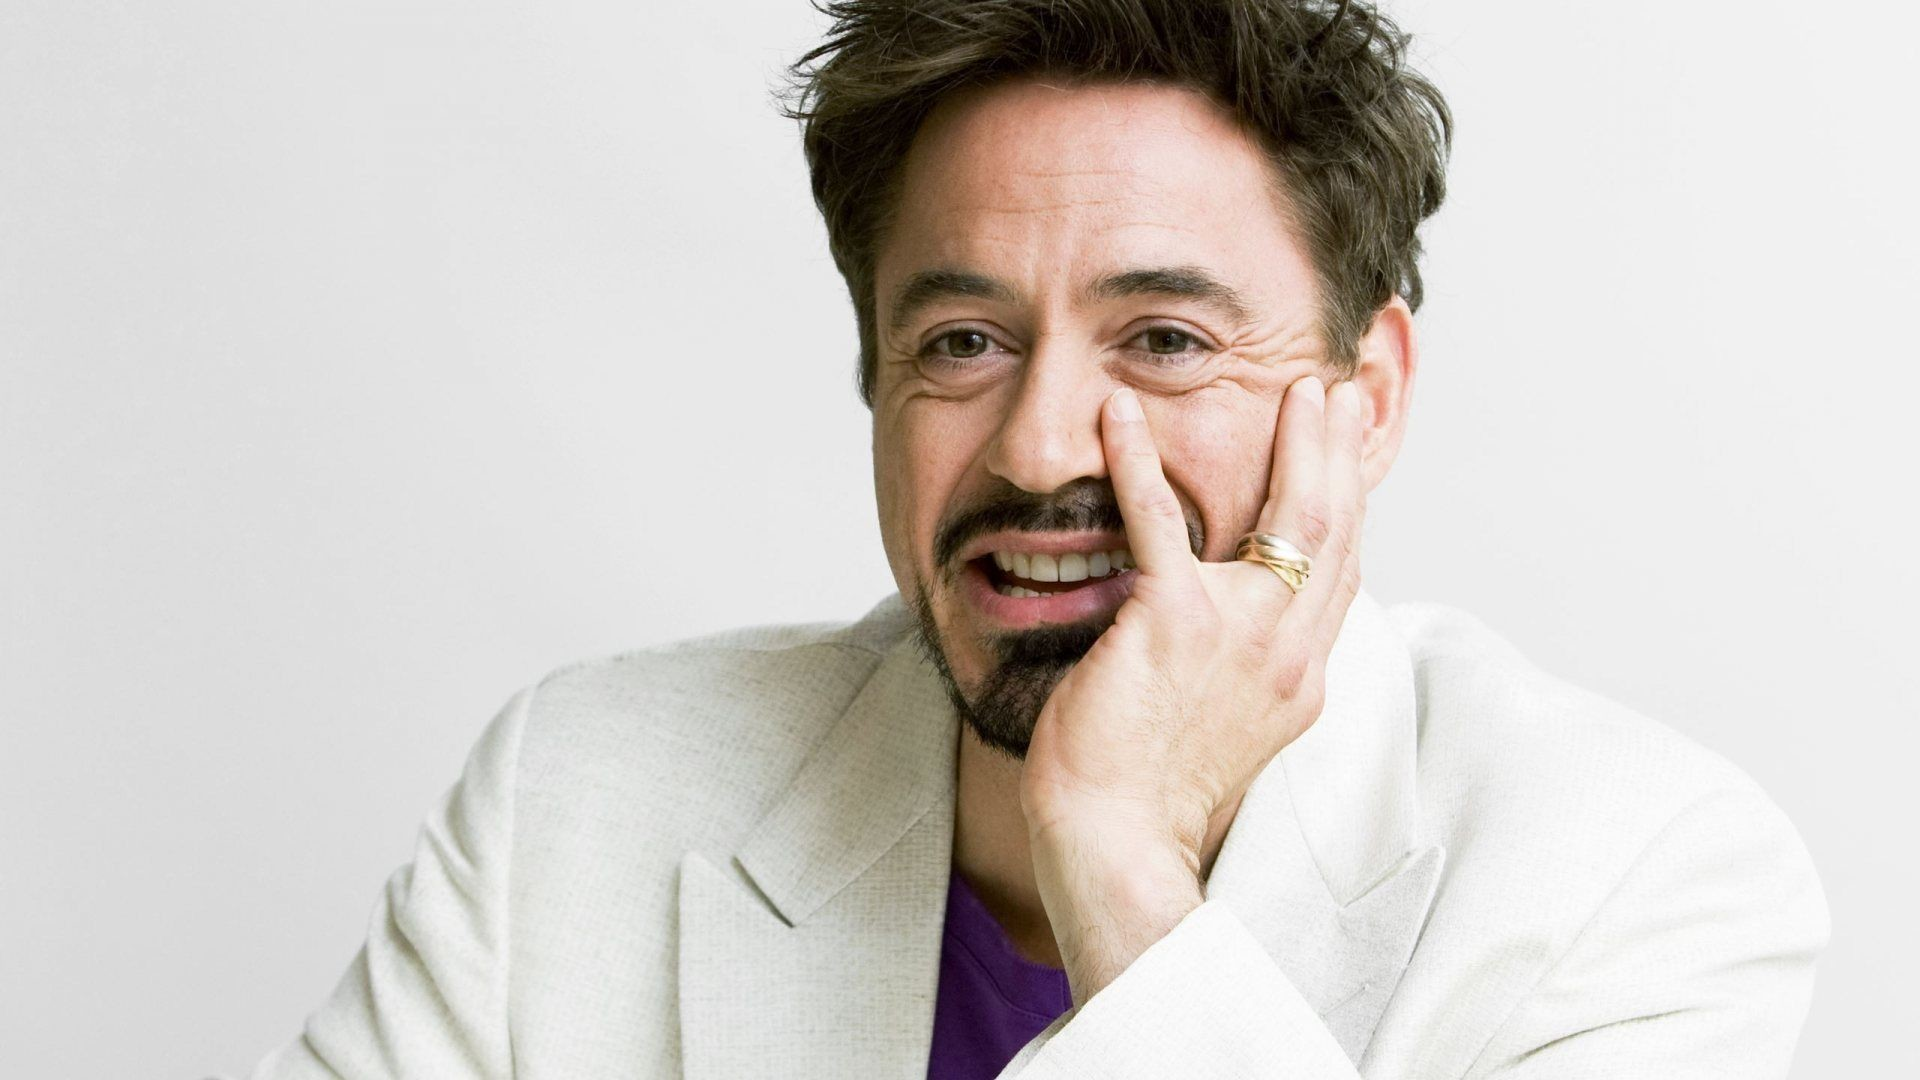 robert downey jr iron man wallpaper (71+ images)